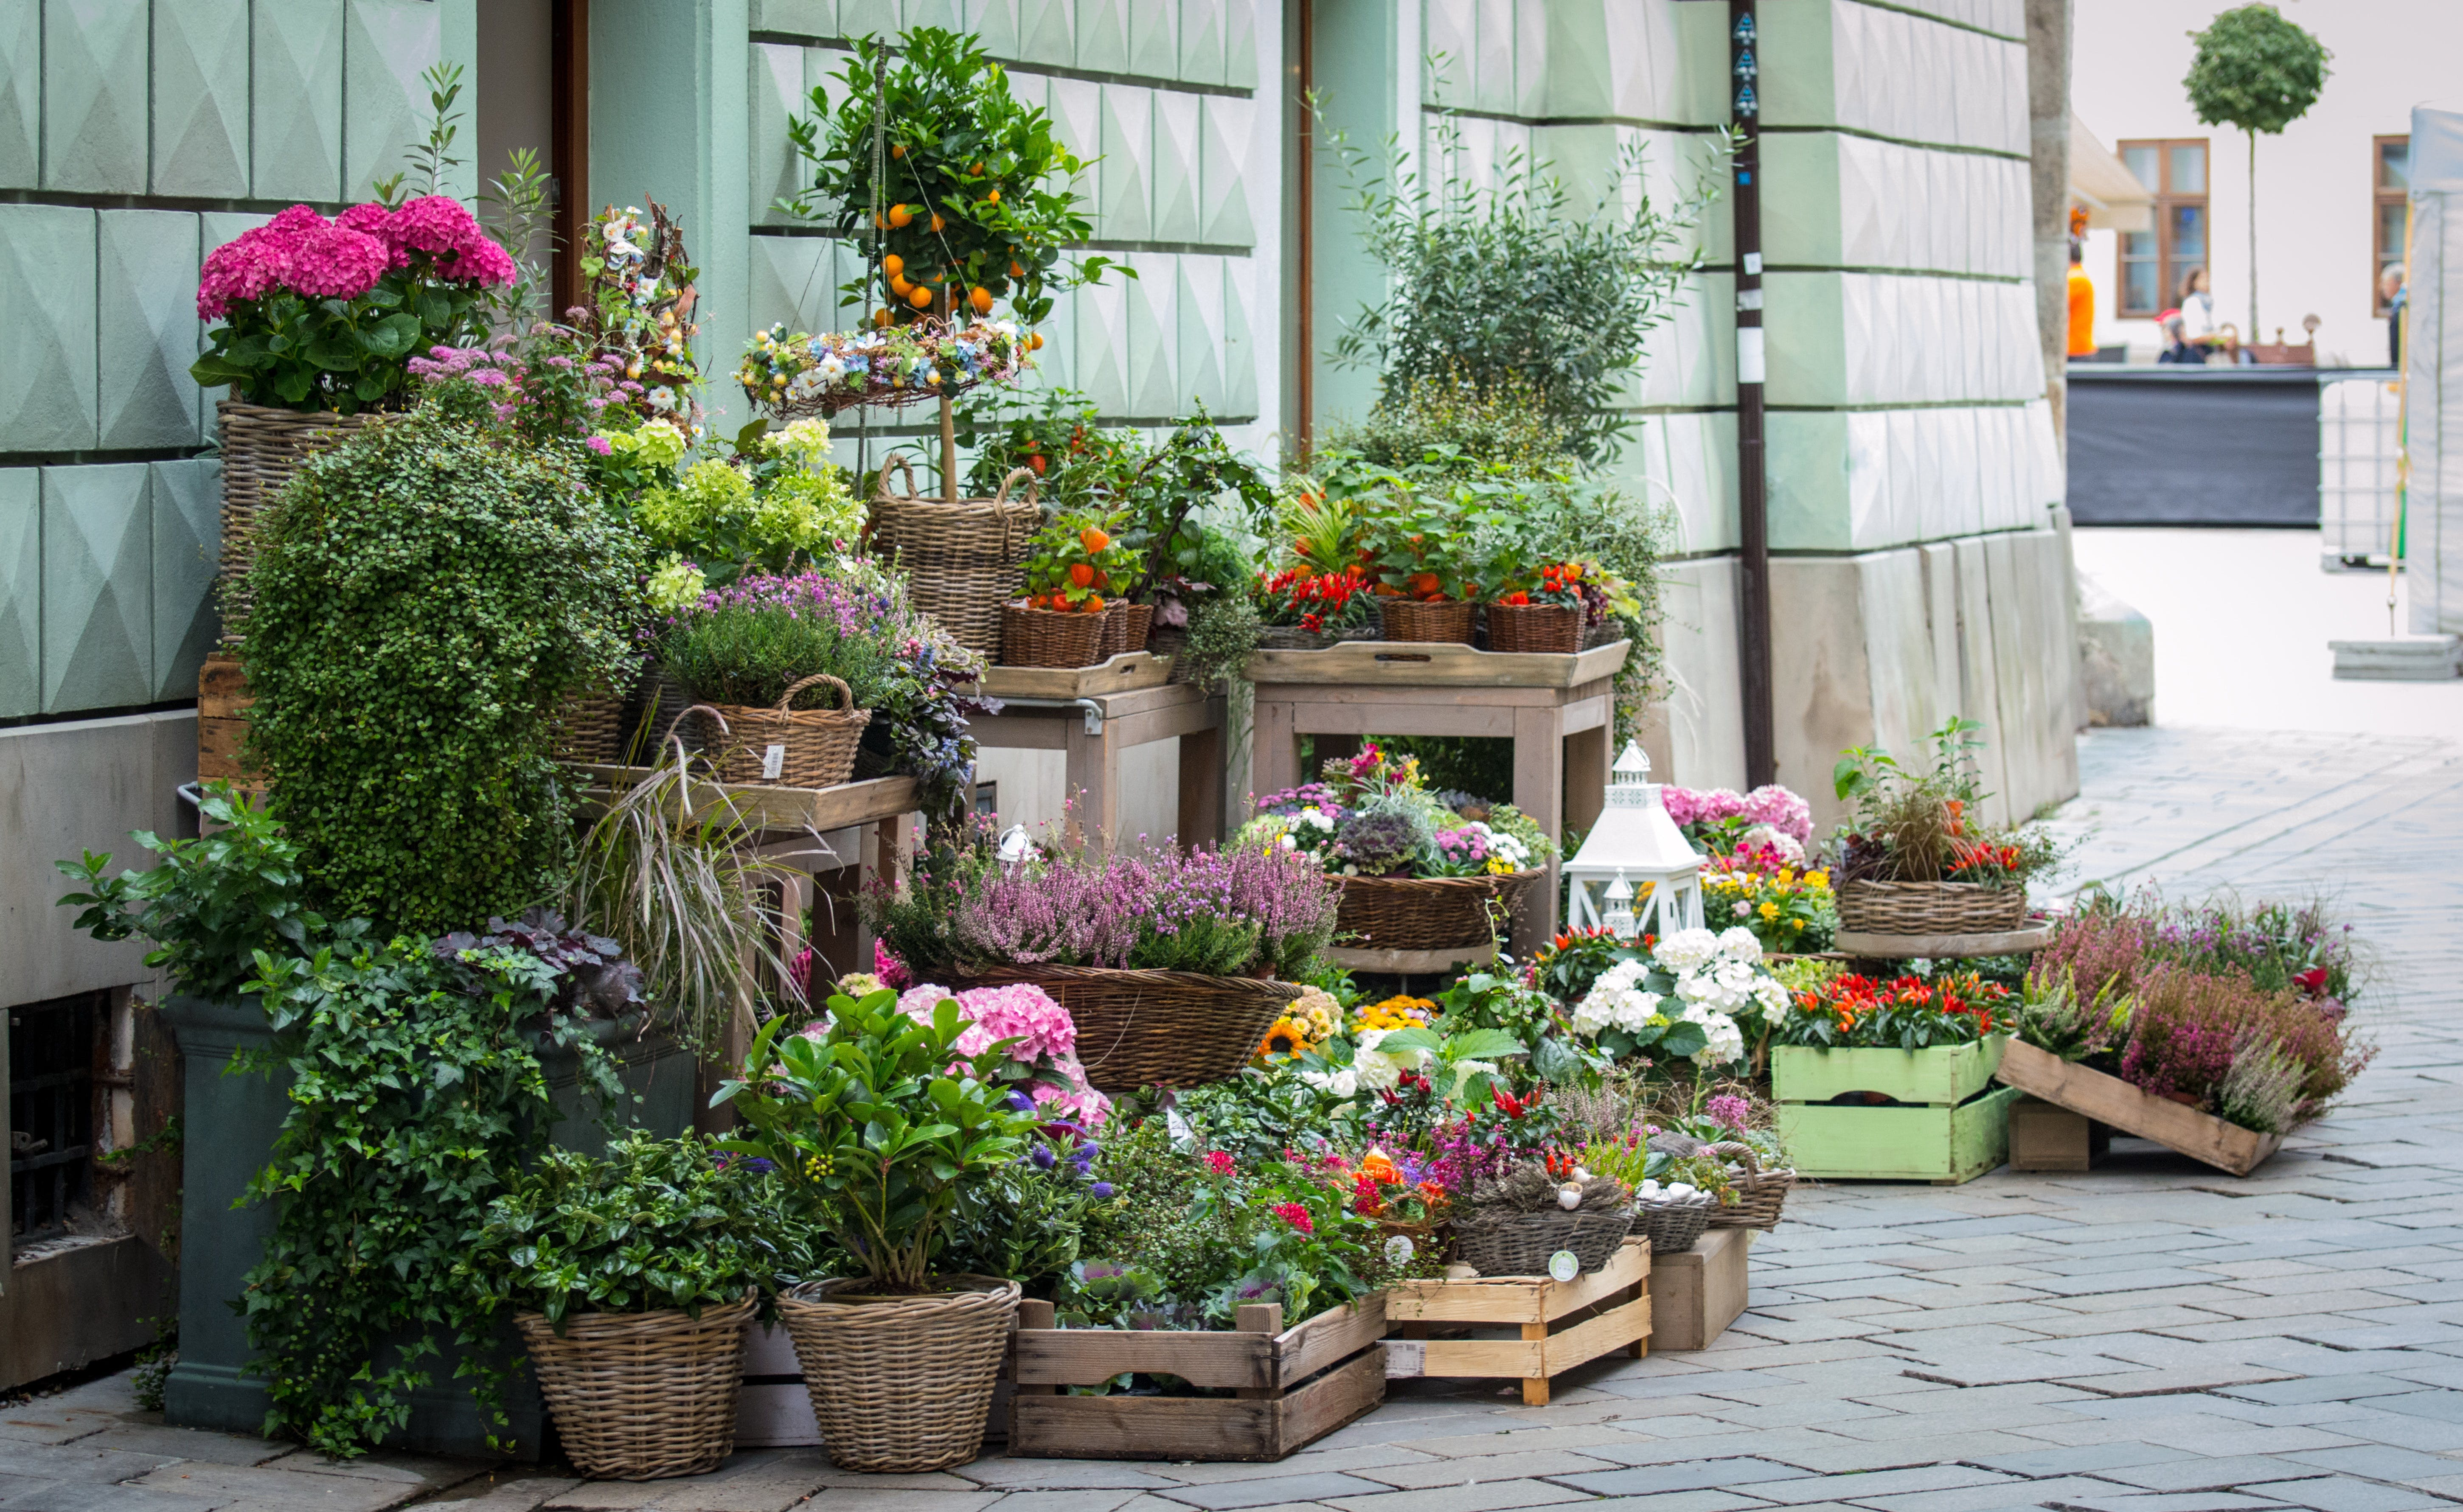 Free stock photo of street, flowers, shop, sale